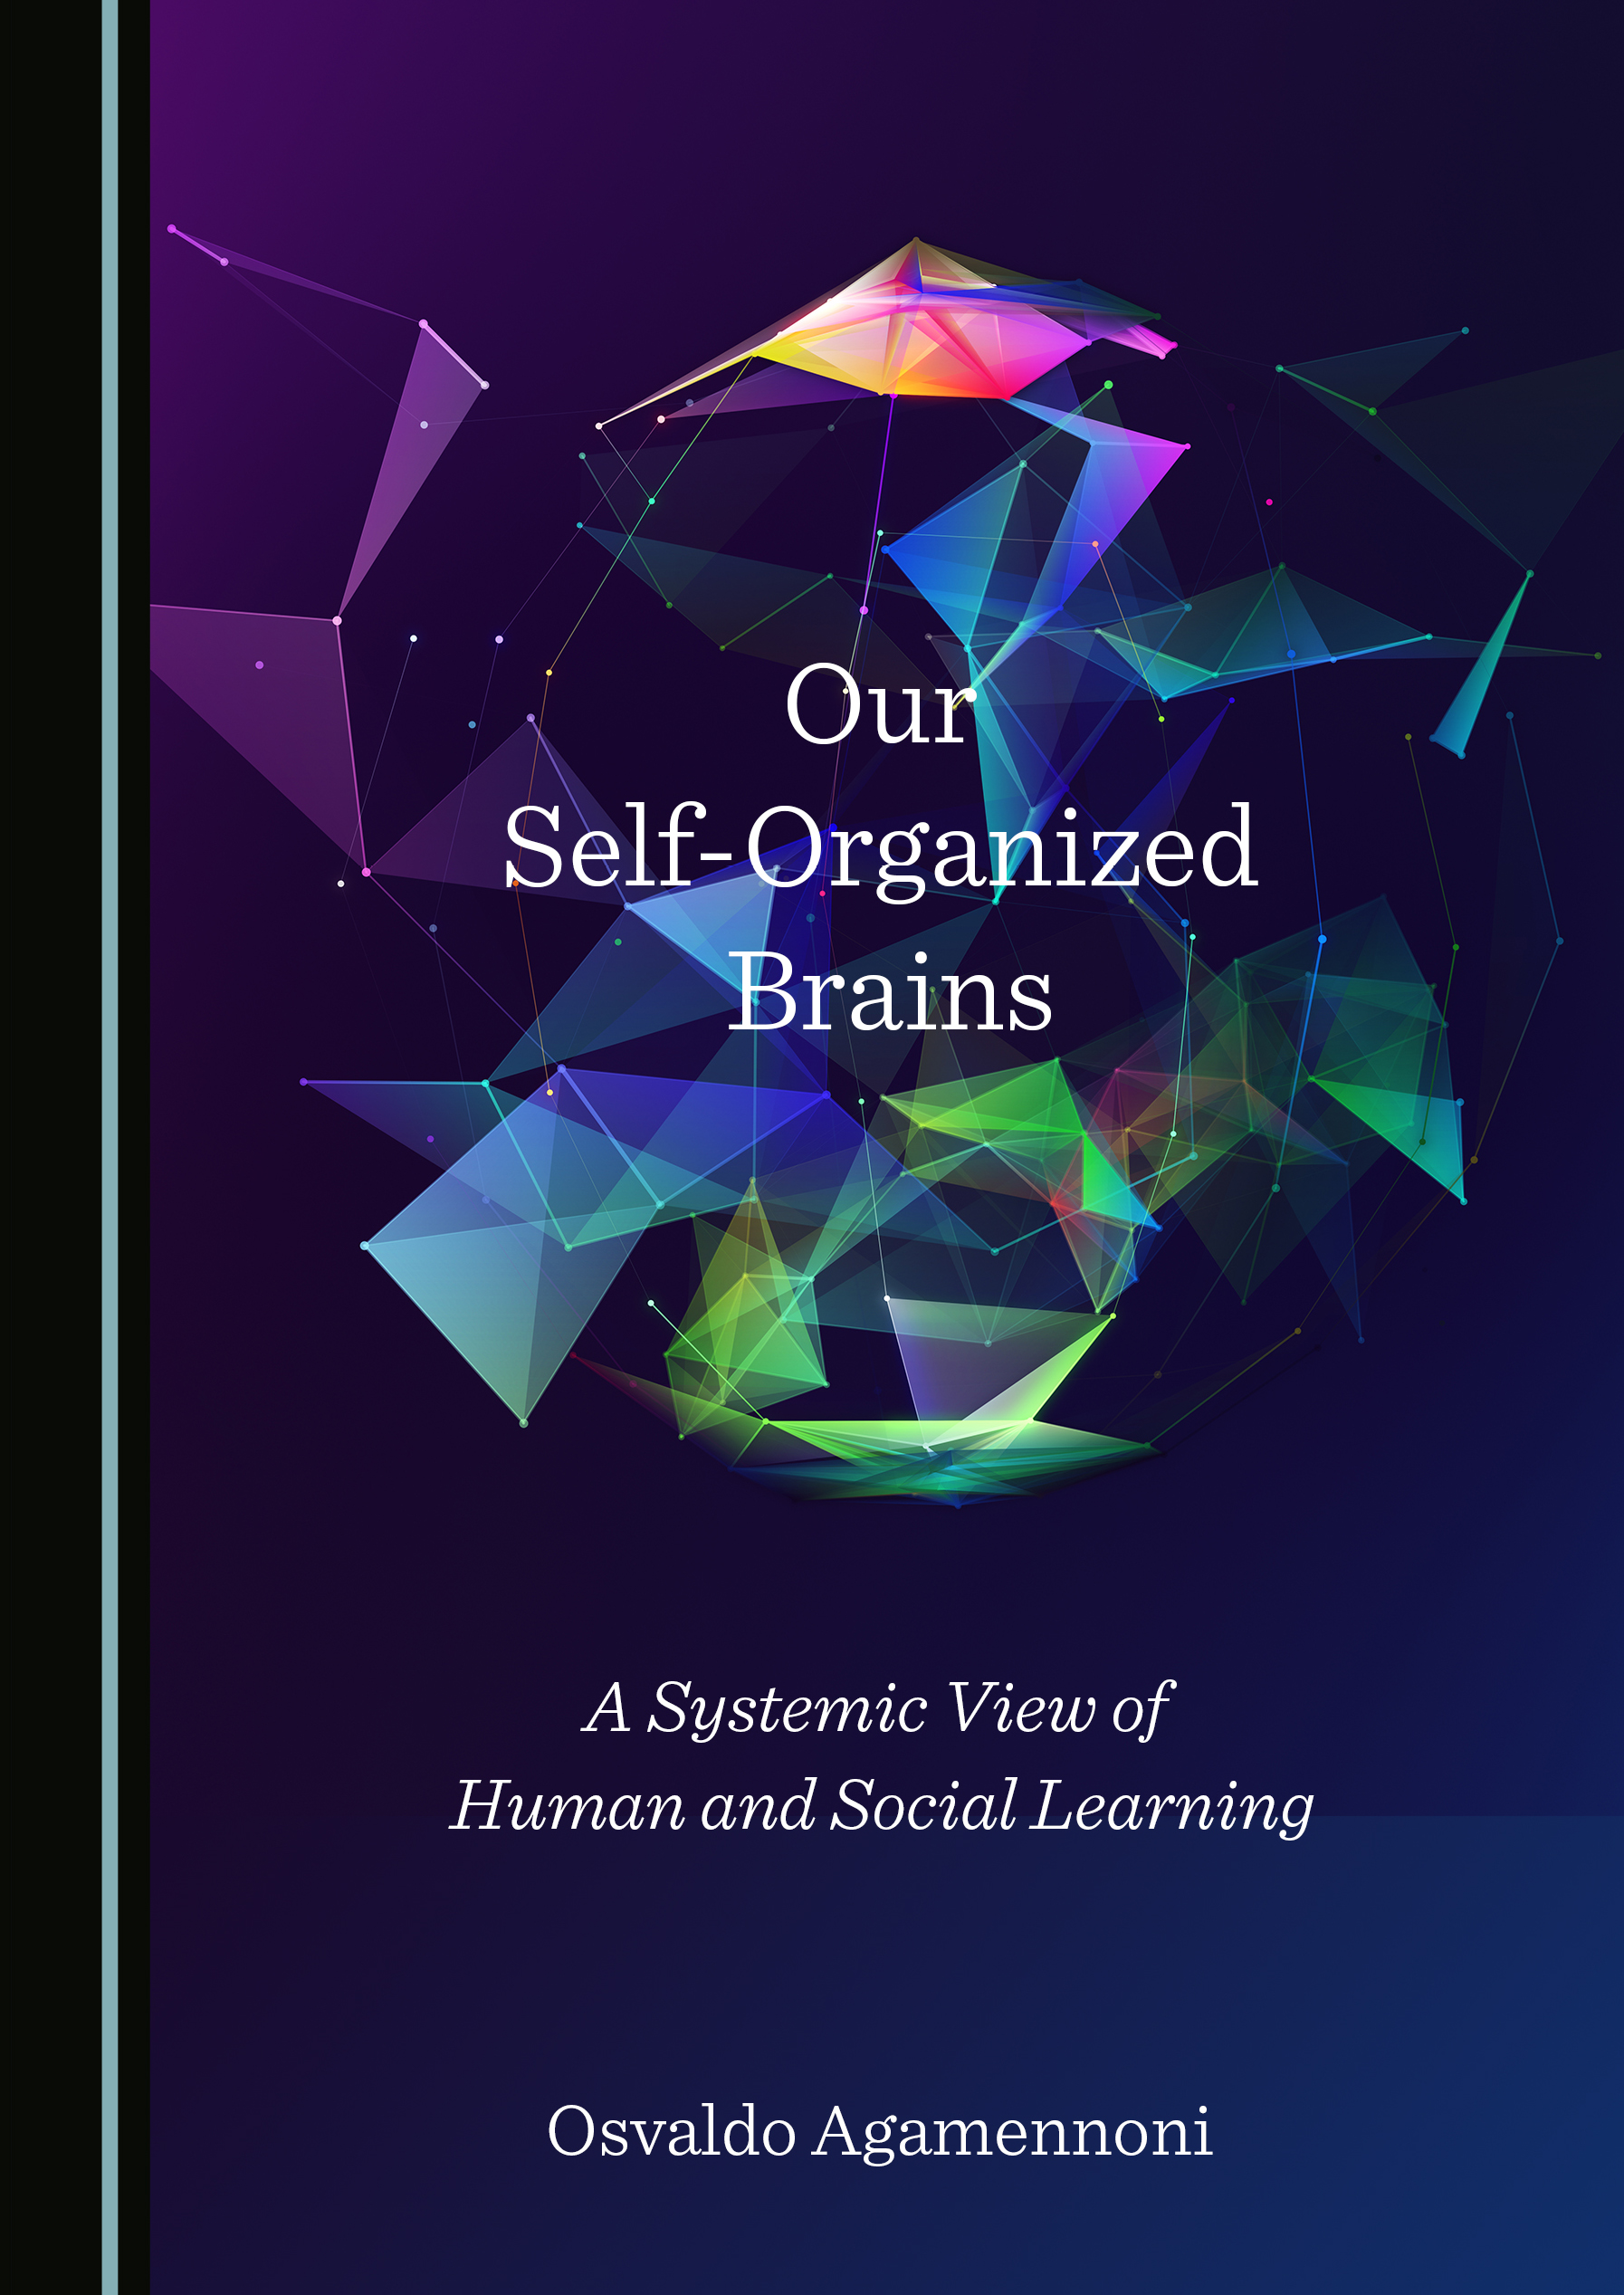 Our Self-Organized Brains: A Systemic View of Human and Social Learning